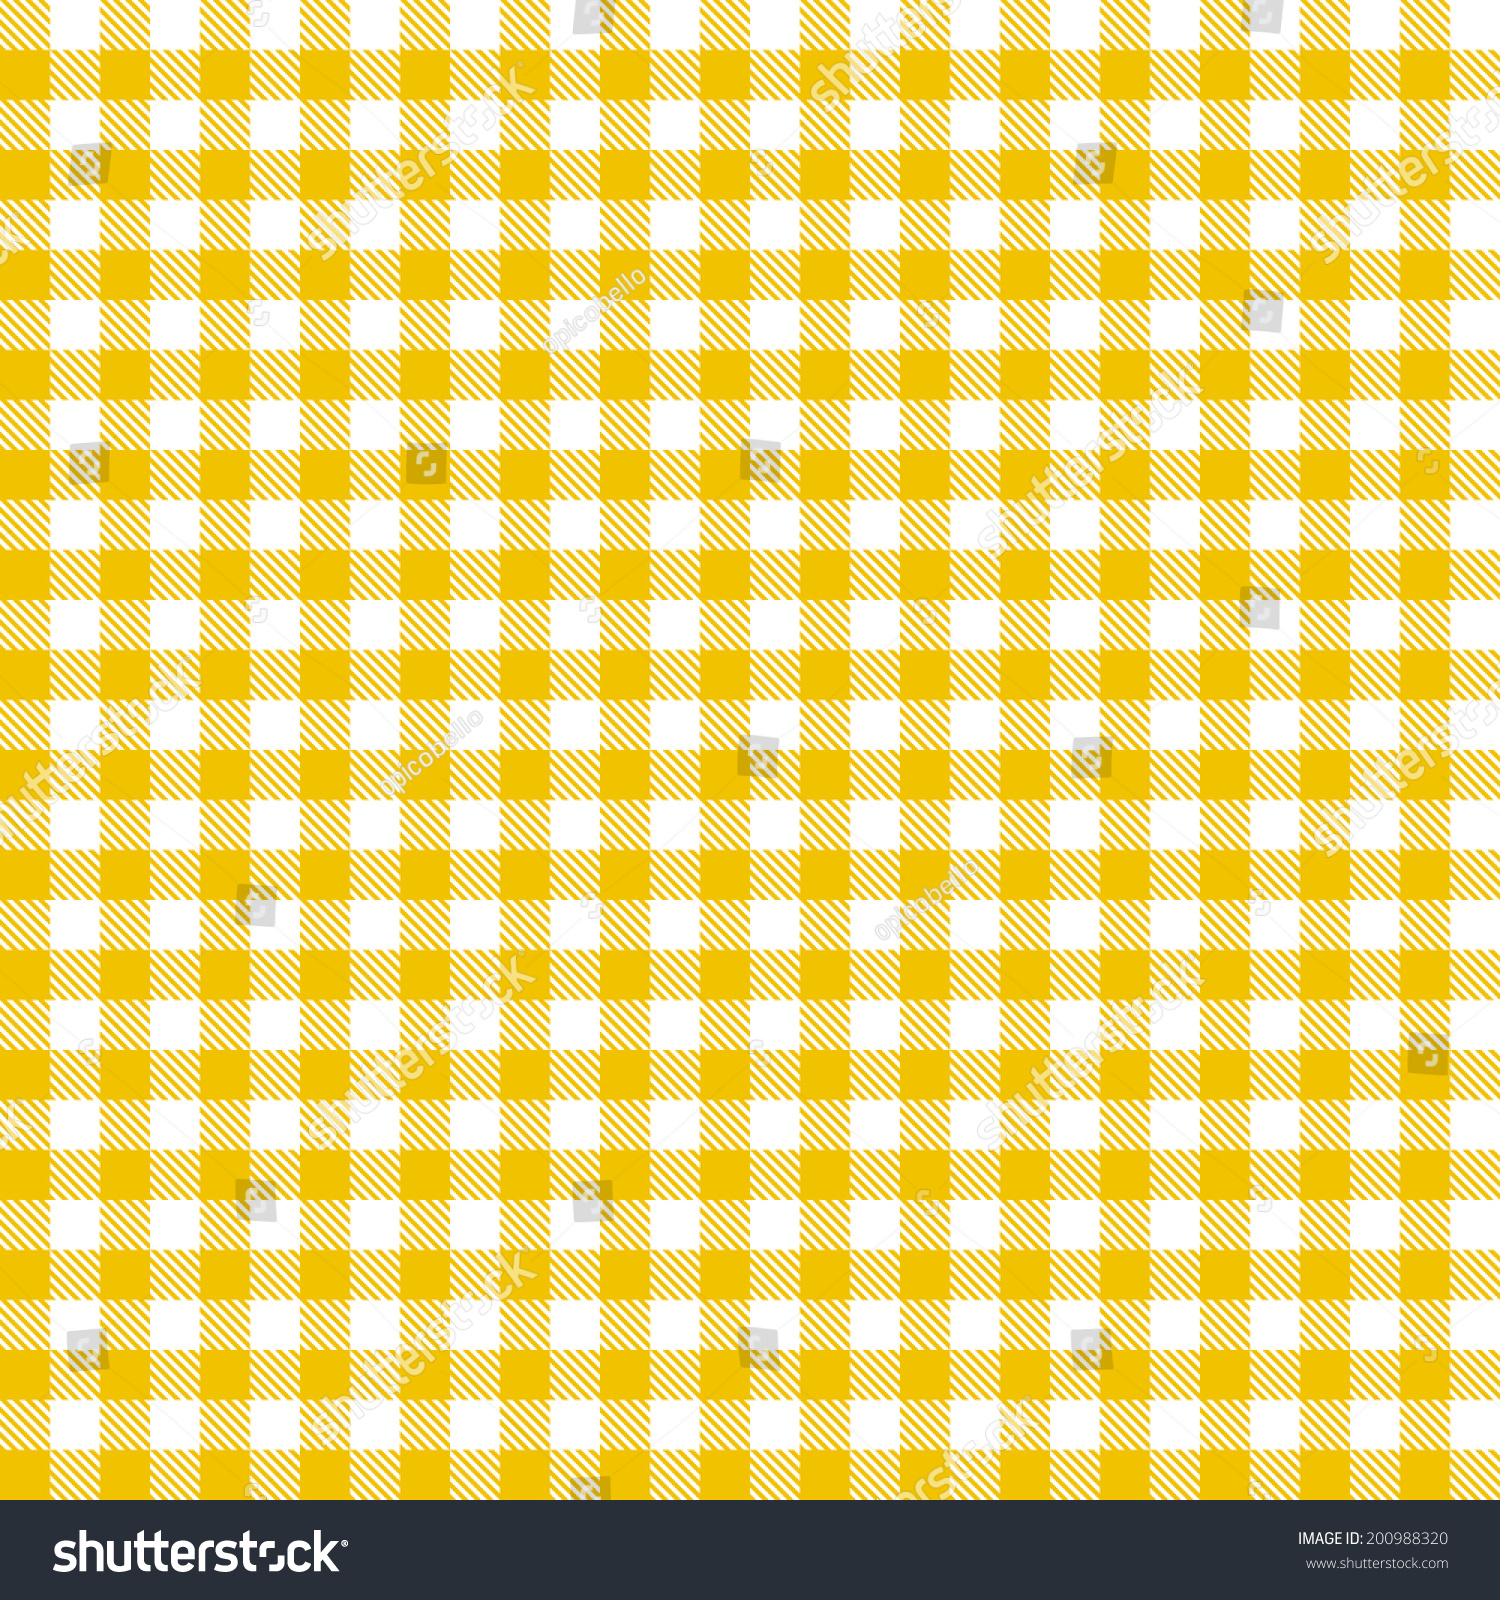 Nice Checkered Tablecloths Pattern   Endless   Yellow